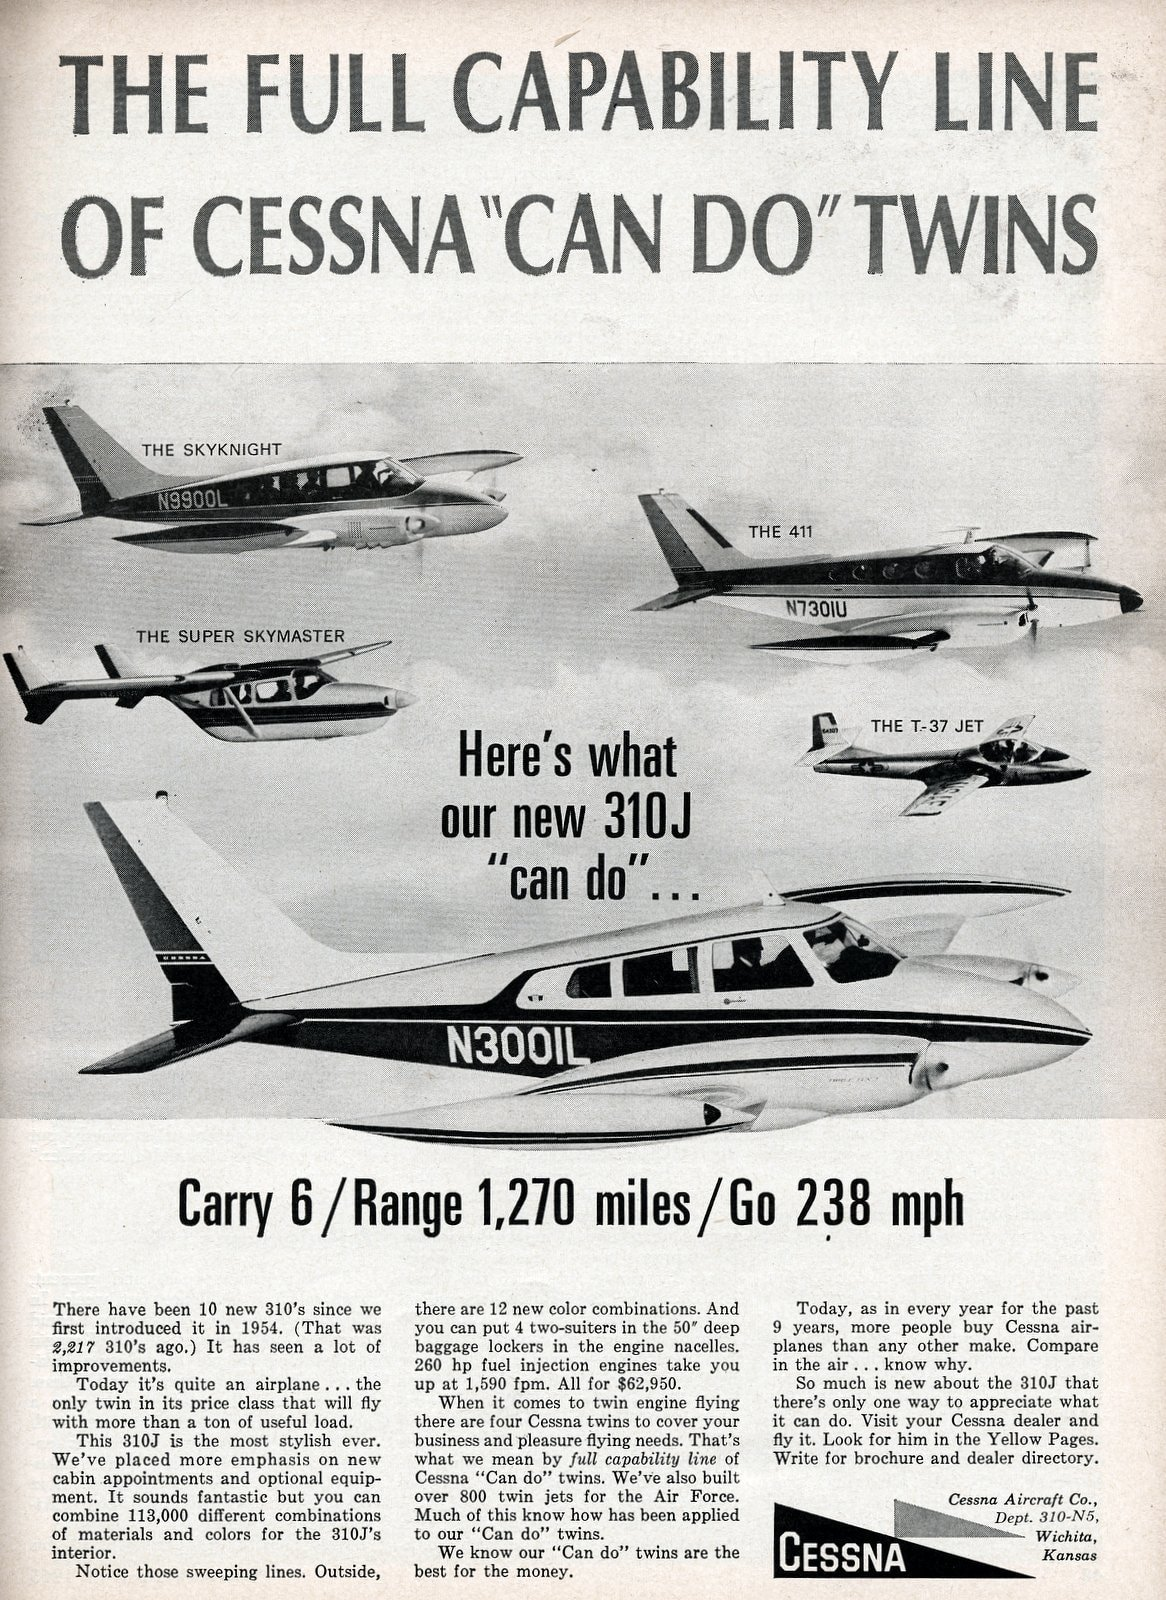 The full capability line of Cessna can do twins (1965)